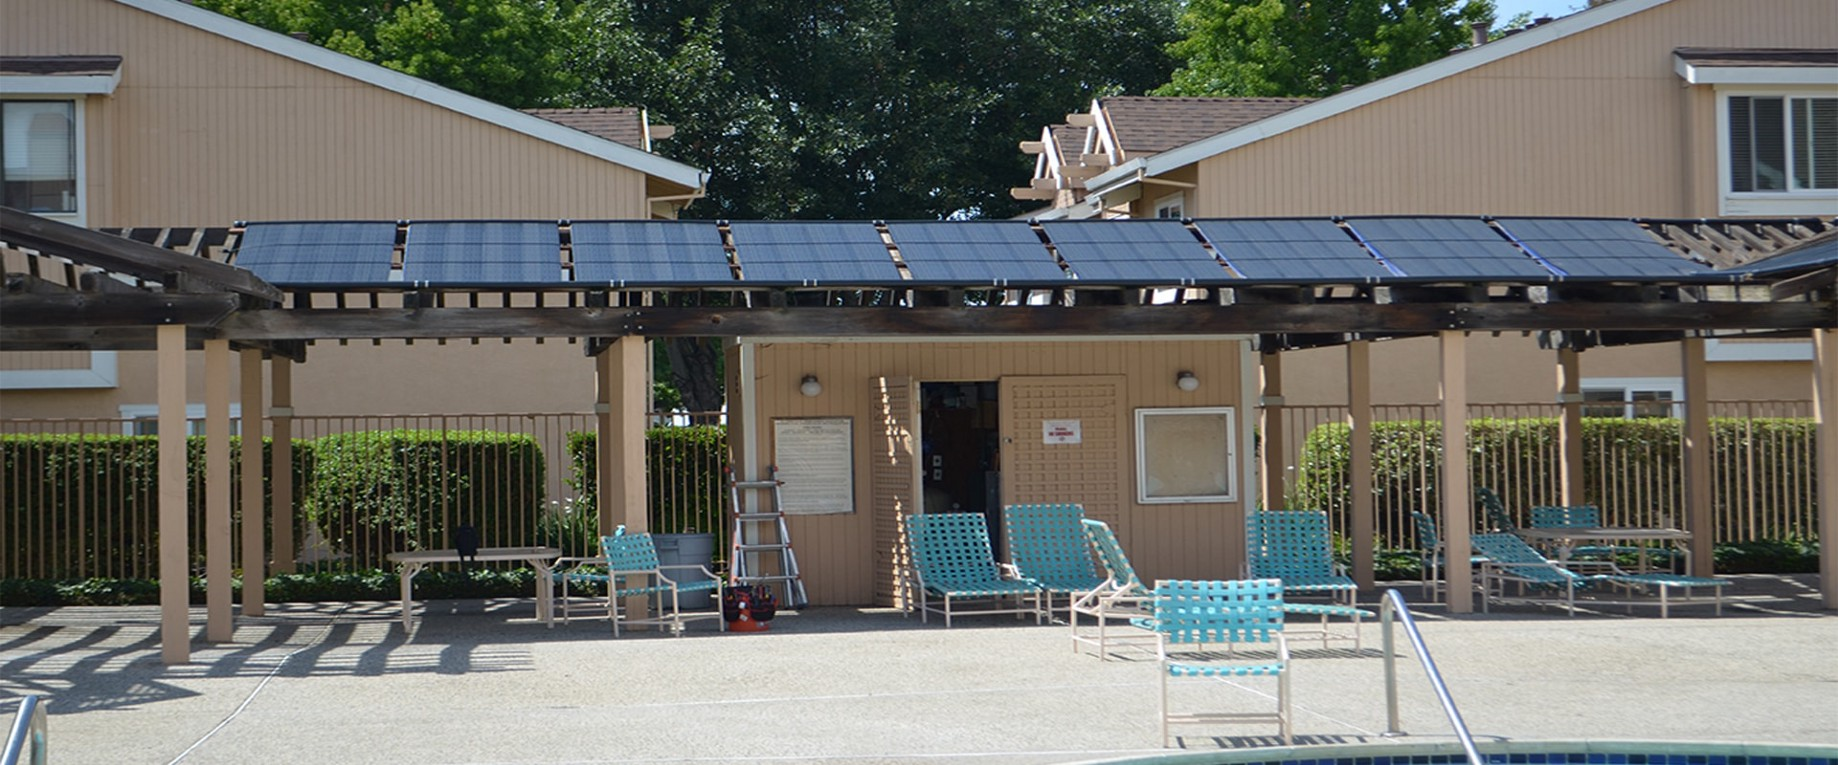 SOLAR ENERGY IS A GREAT FIT FOR YOUR SWIMMING POOL?